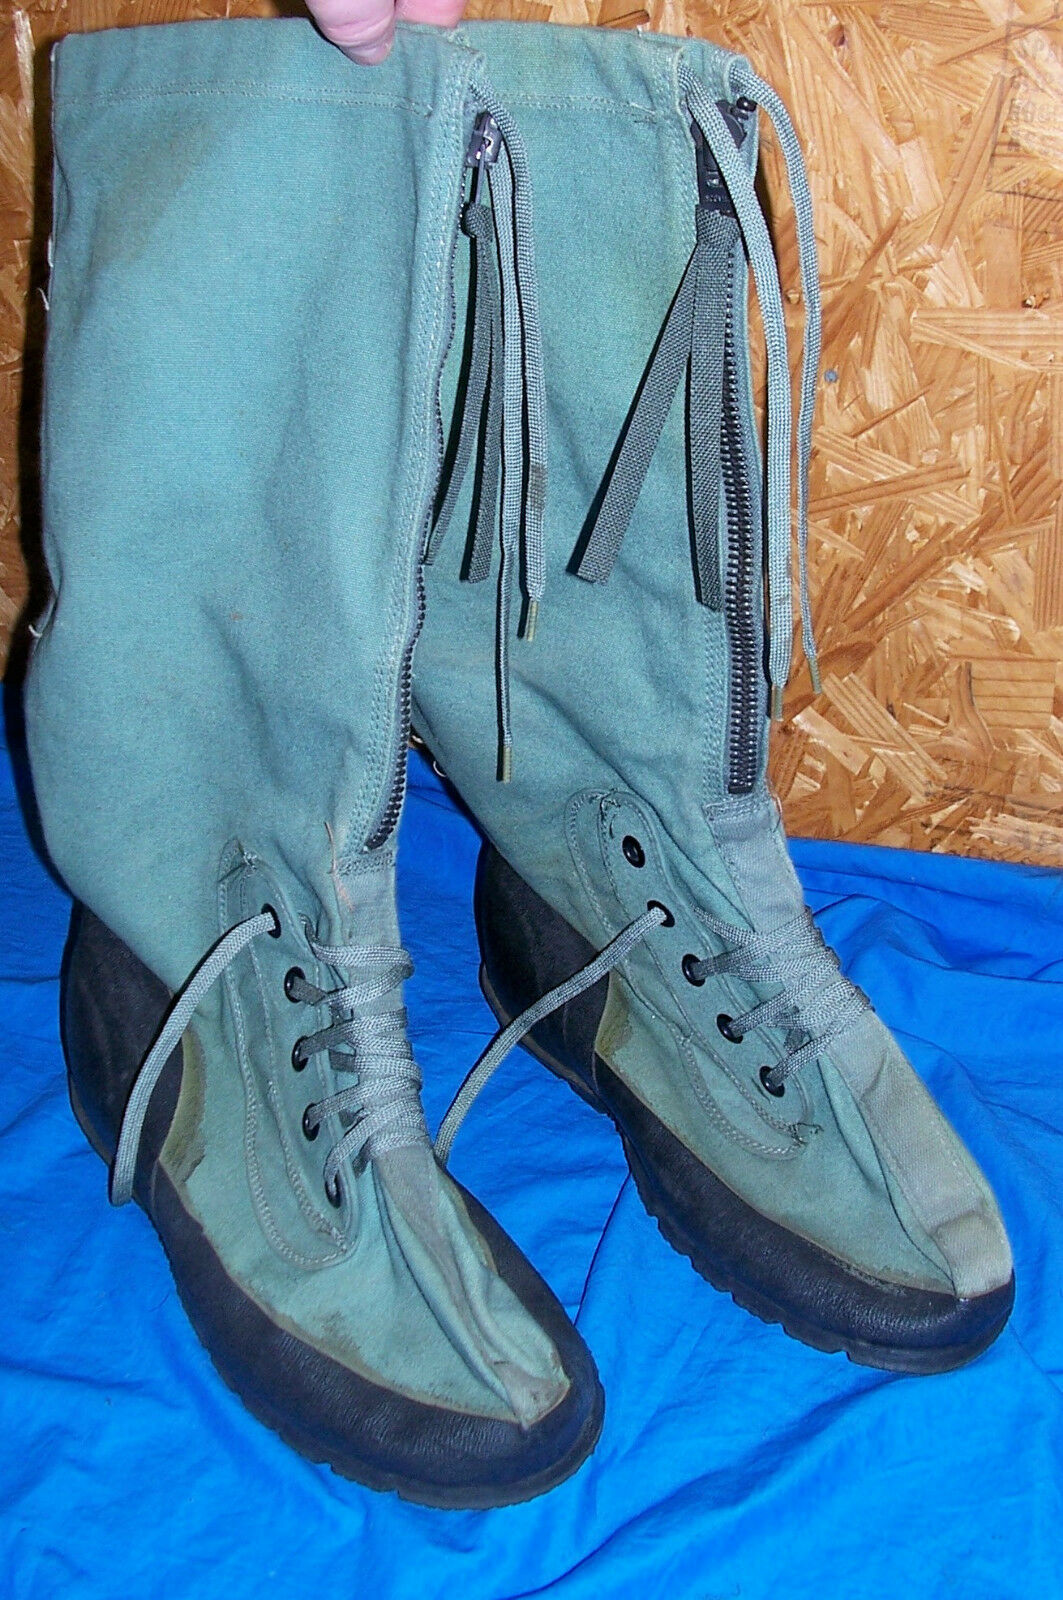 Boots Army Extreme Cold Weather Size M Medium Snow 8430-00-269-0099 Men's Arctic